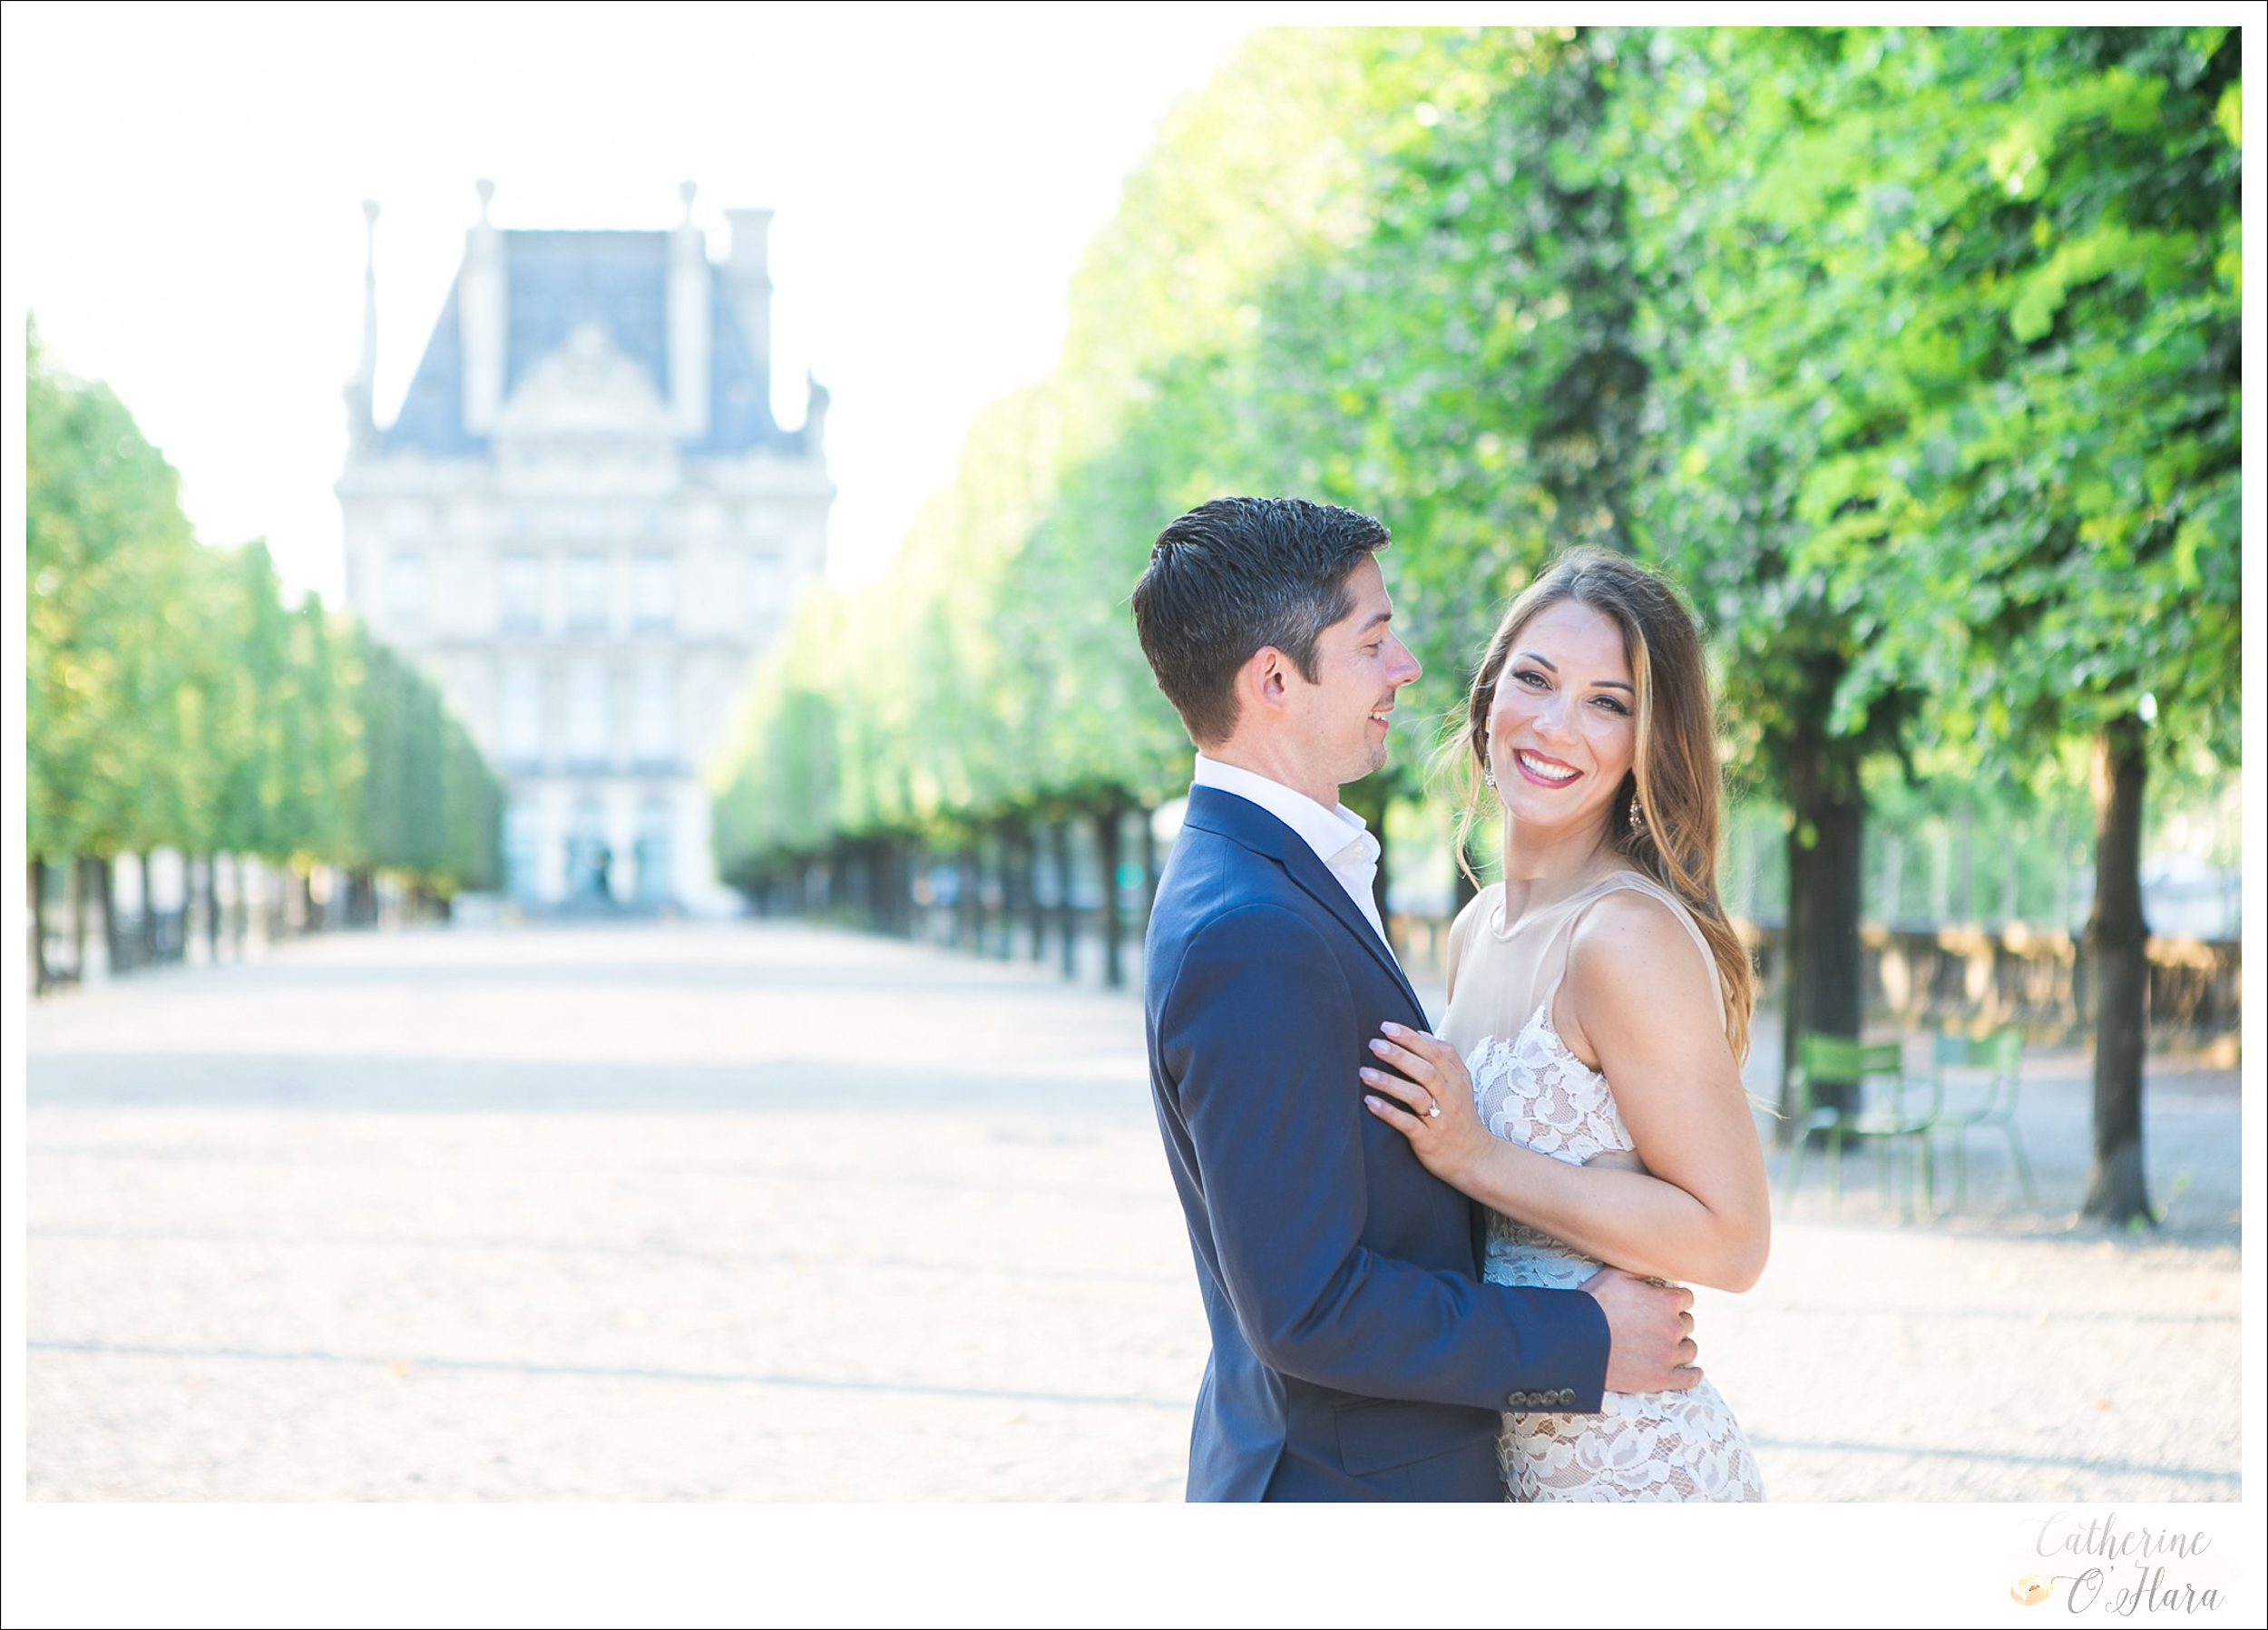 paris france engagement proposal photographer-21.jpg